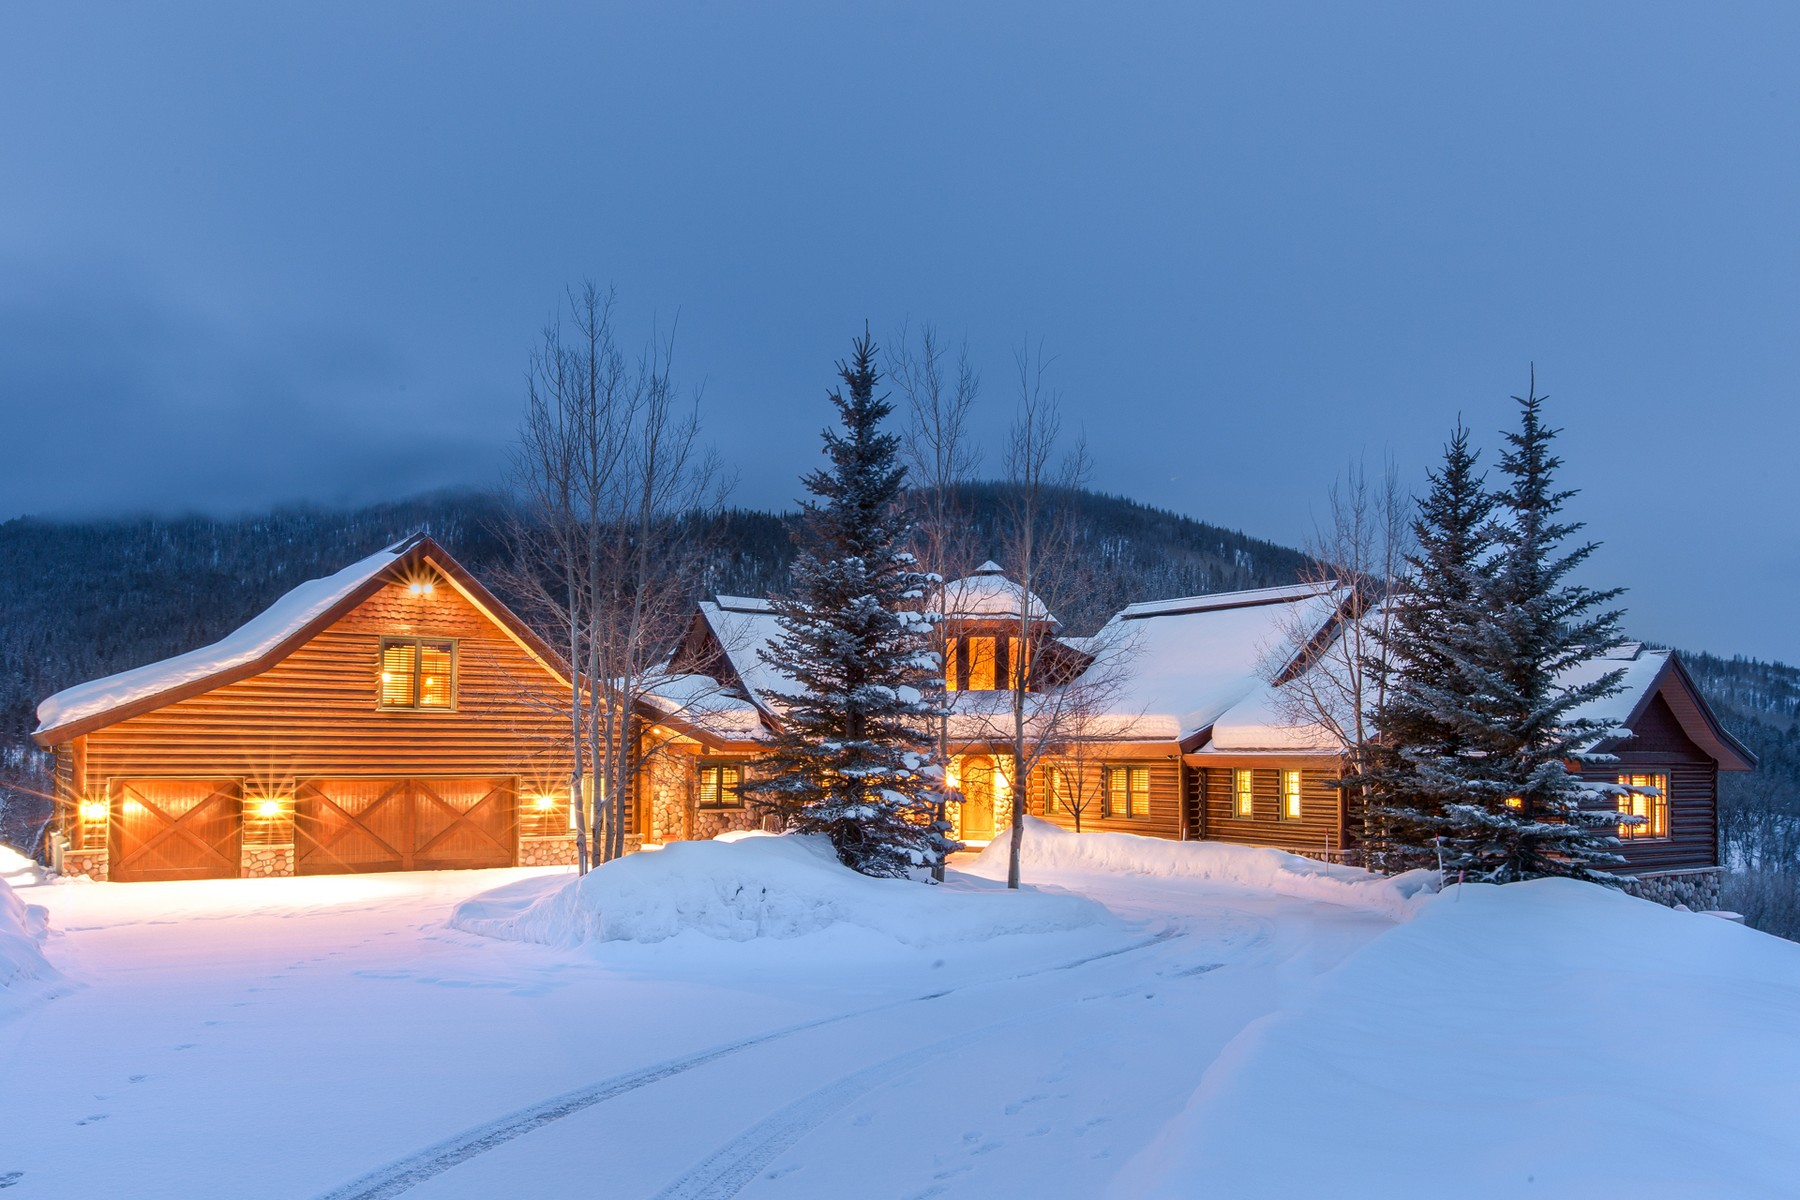 Villa per Vendita alle ore Catamount Ranch 34200 Catamount Dr. Steamboat Springs, Colorado, 80487 Stati Uniti